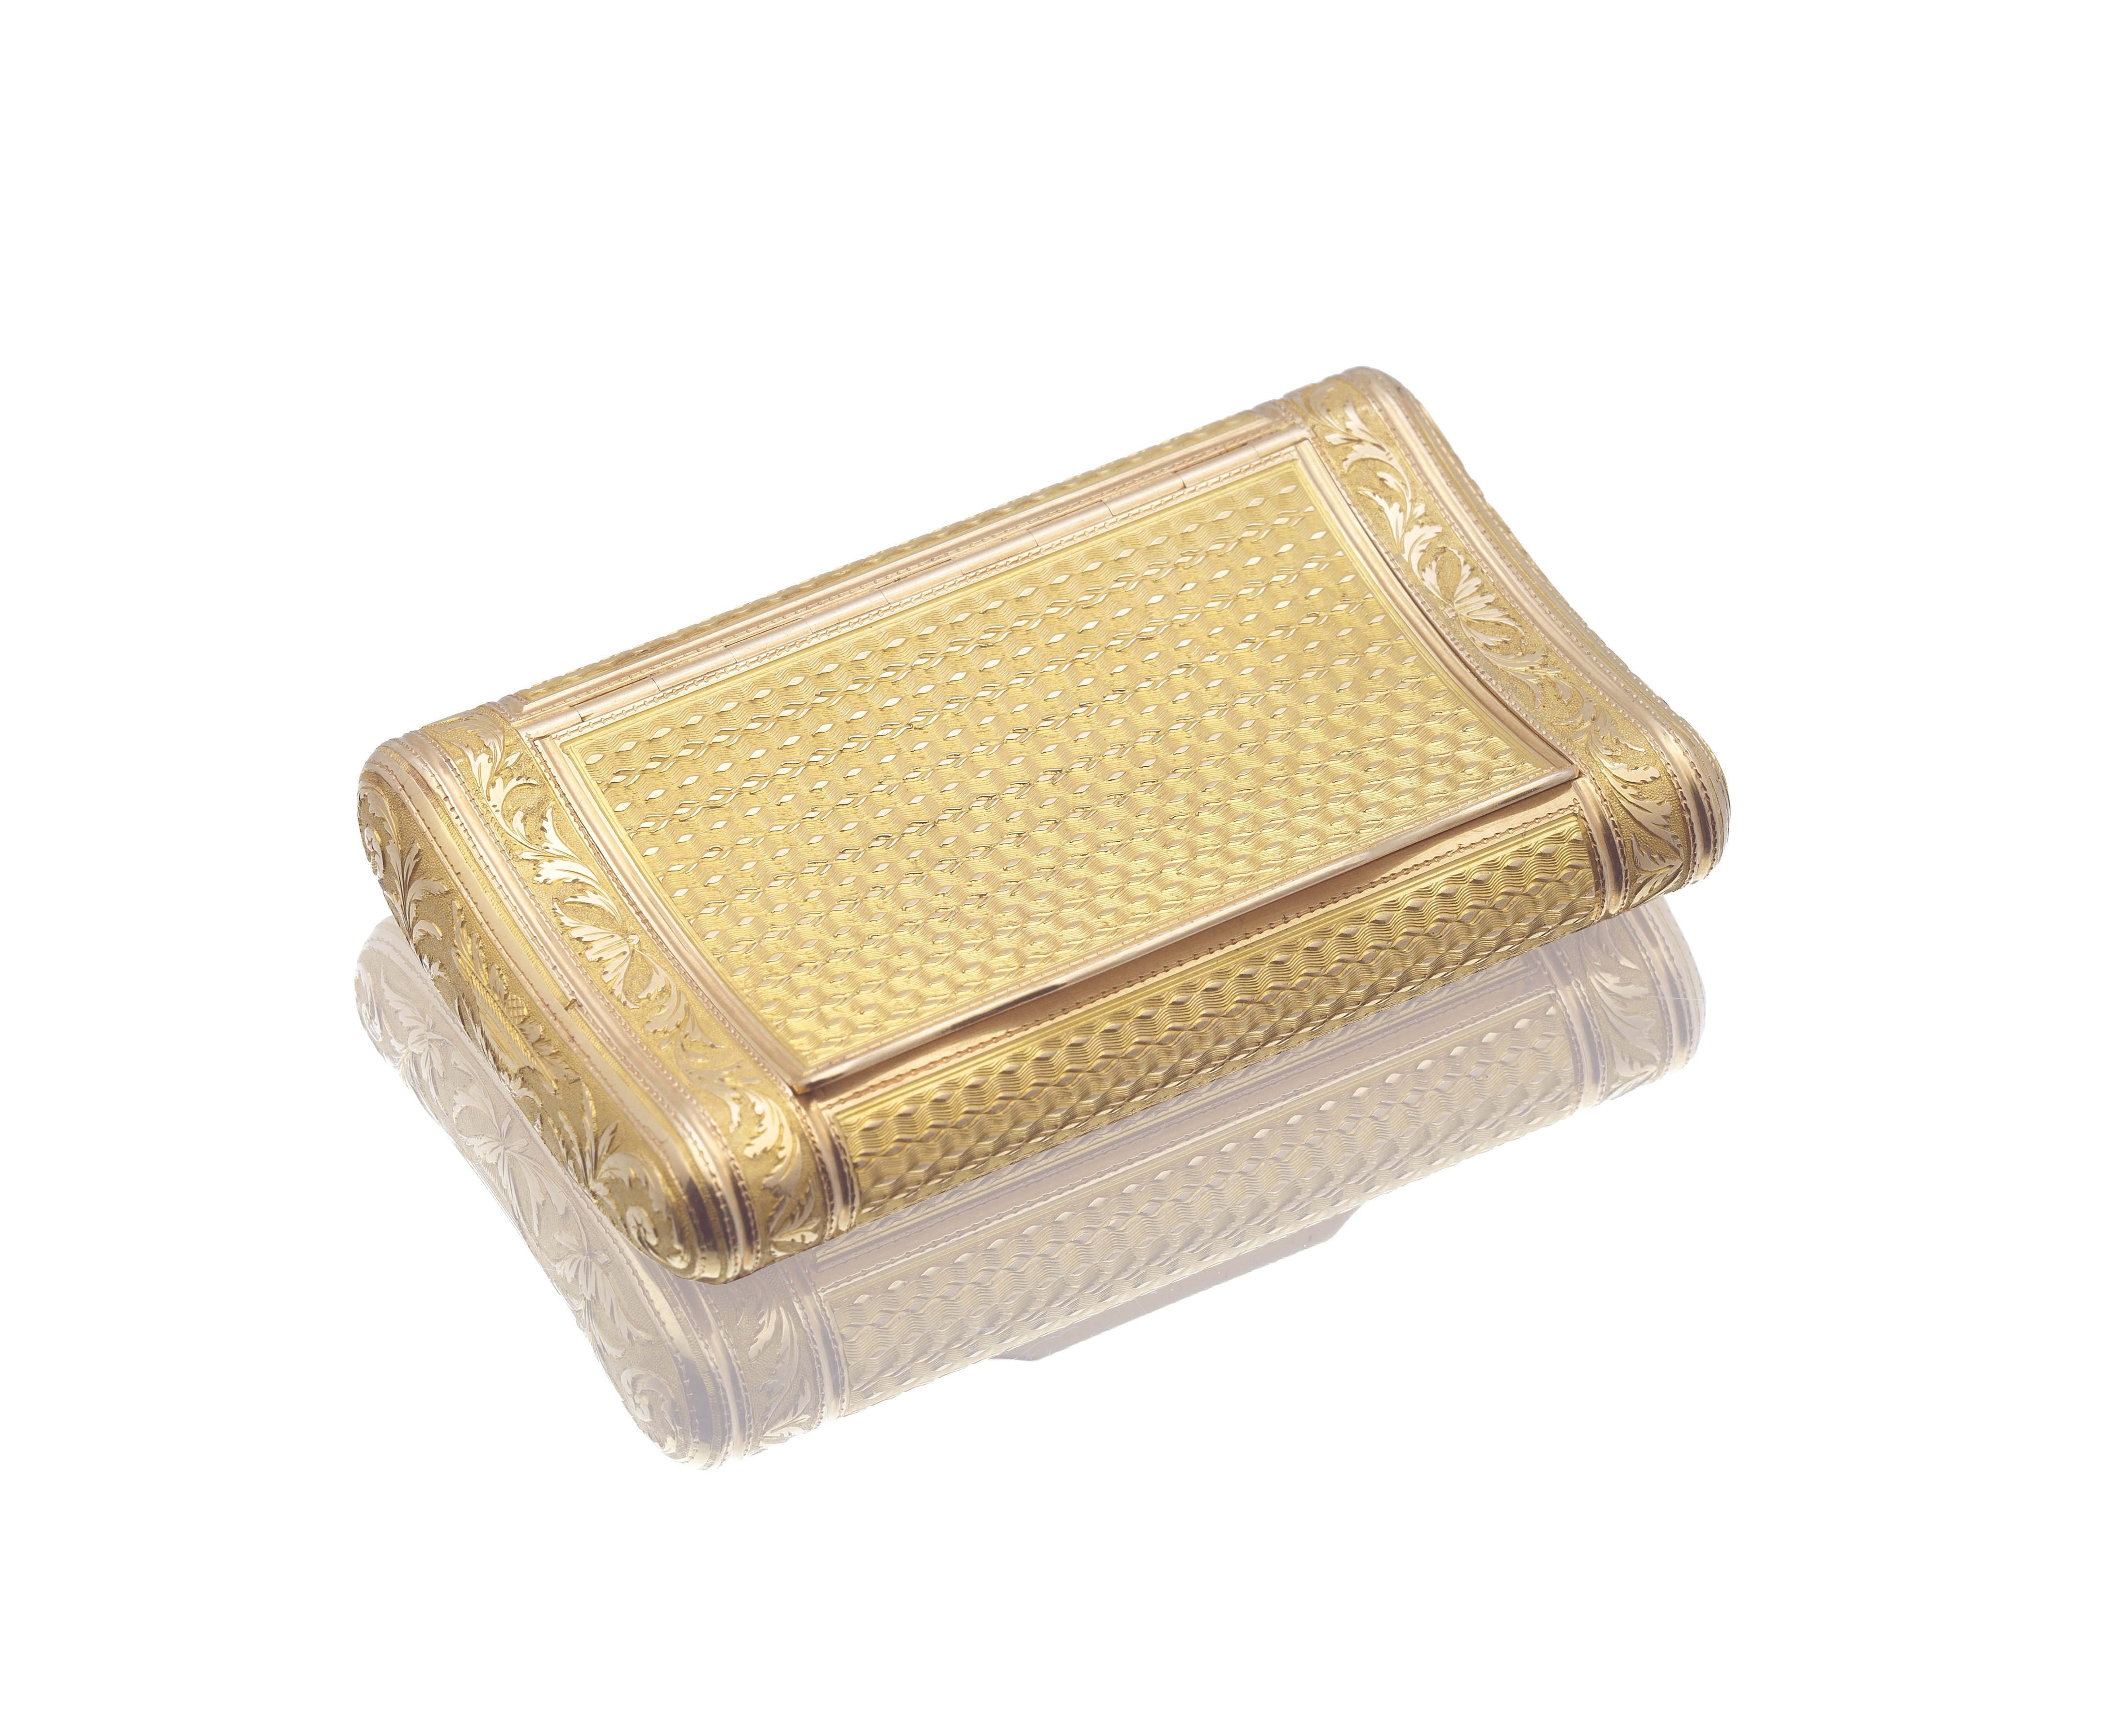 Lot 7 - An early 19th century French gold box Joseph-François Marcillac, with unofficial post-revolutiona...